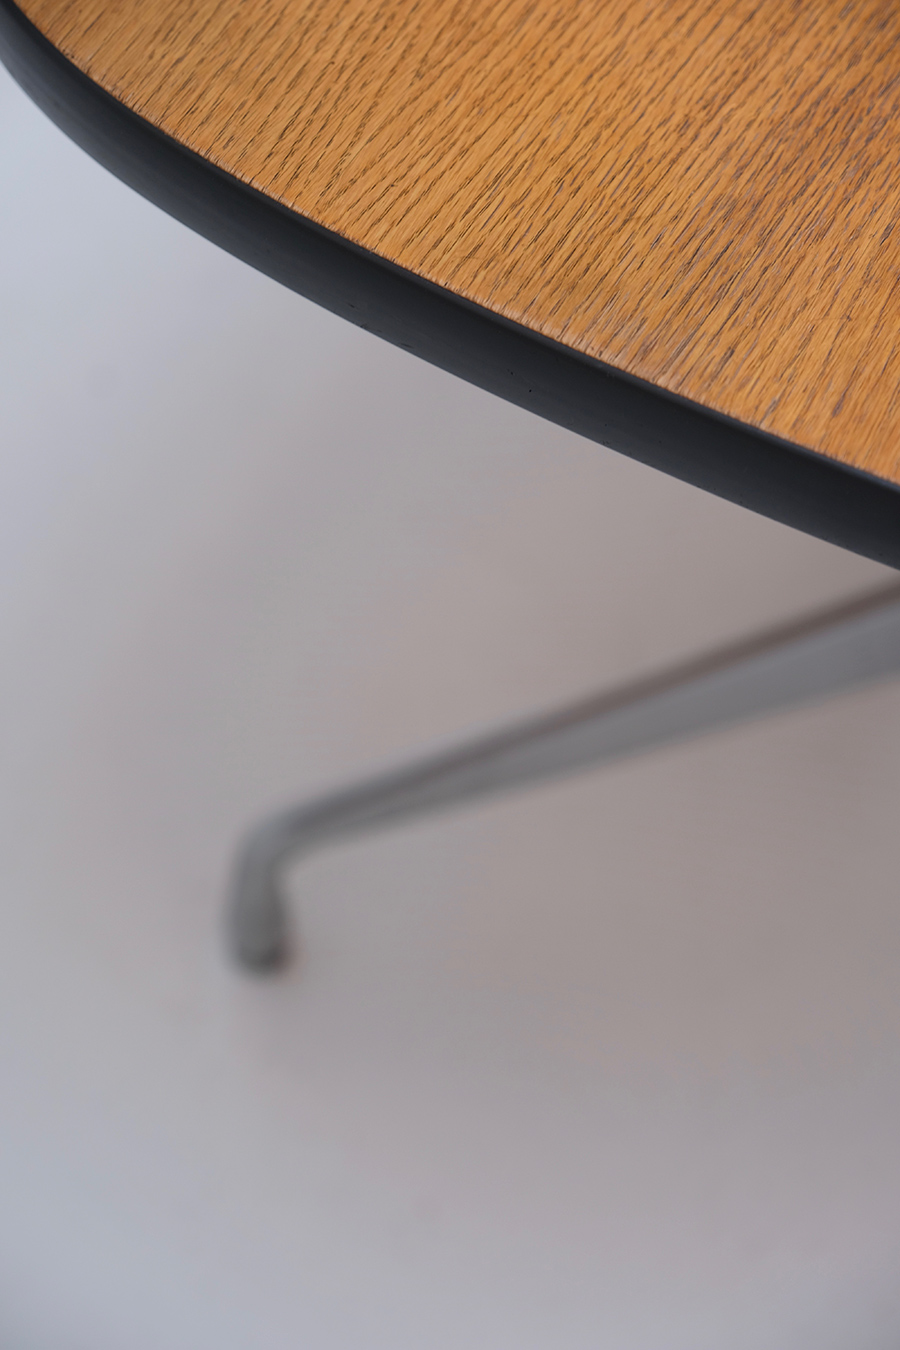 Eames Segmented Tableimage 3